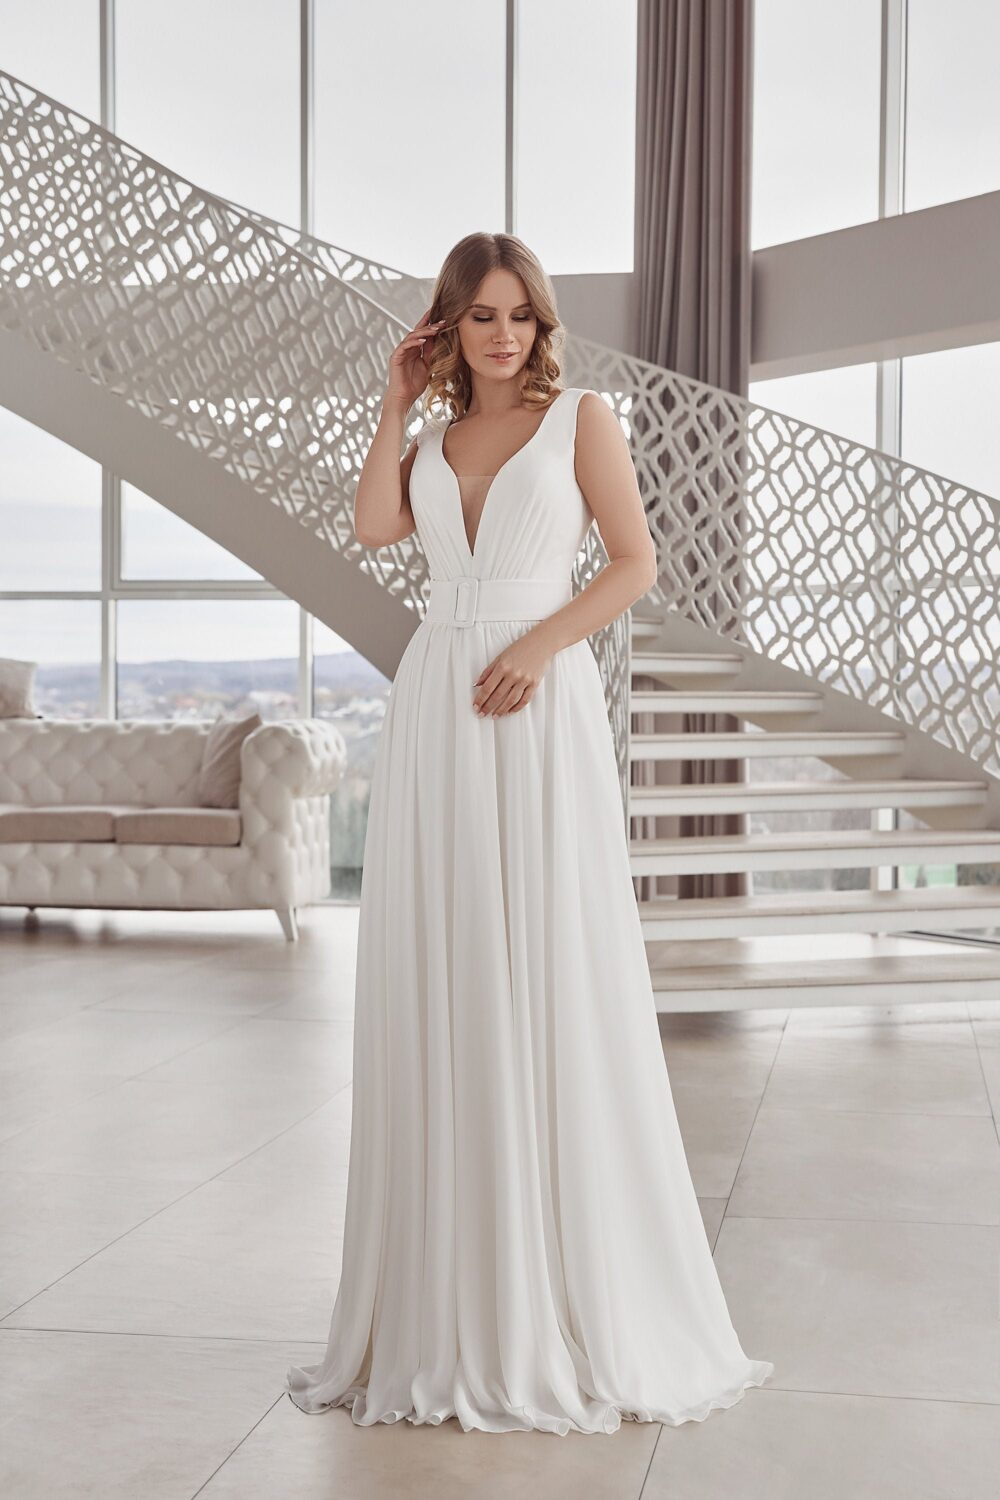 Wedding Dress, Simple Wedding Minimalistic Plus Size Bridal Gown With Open Back